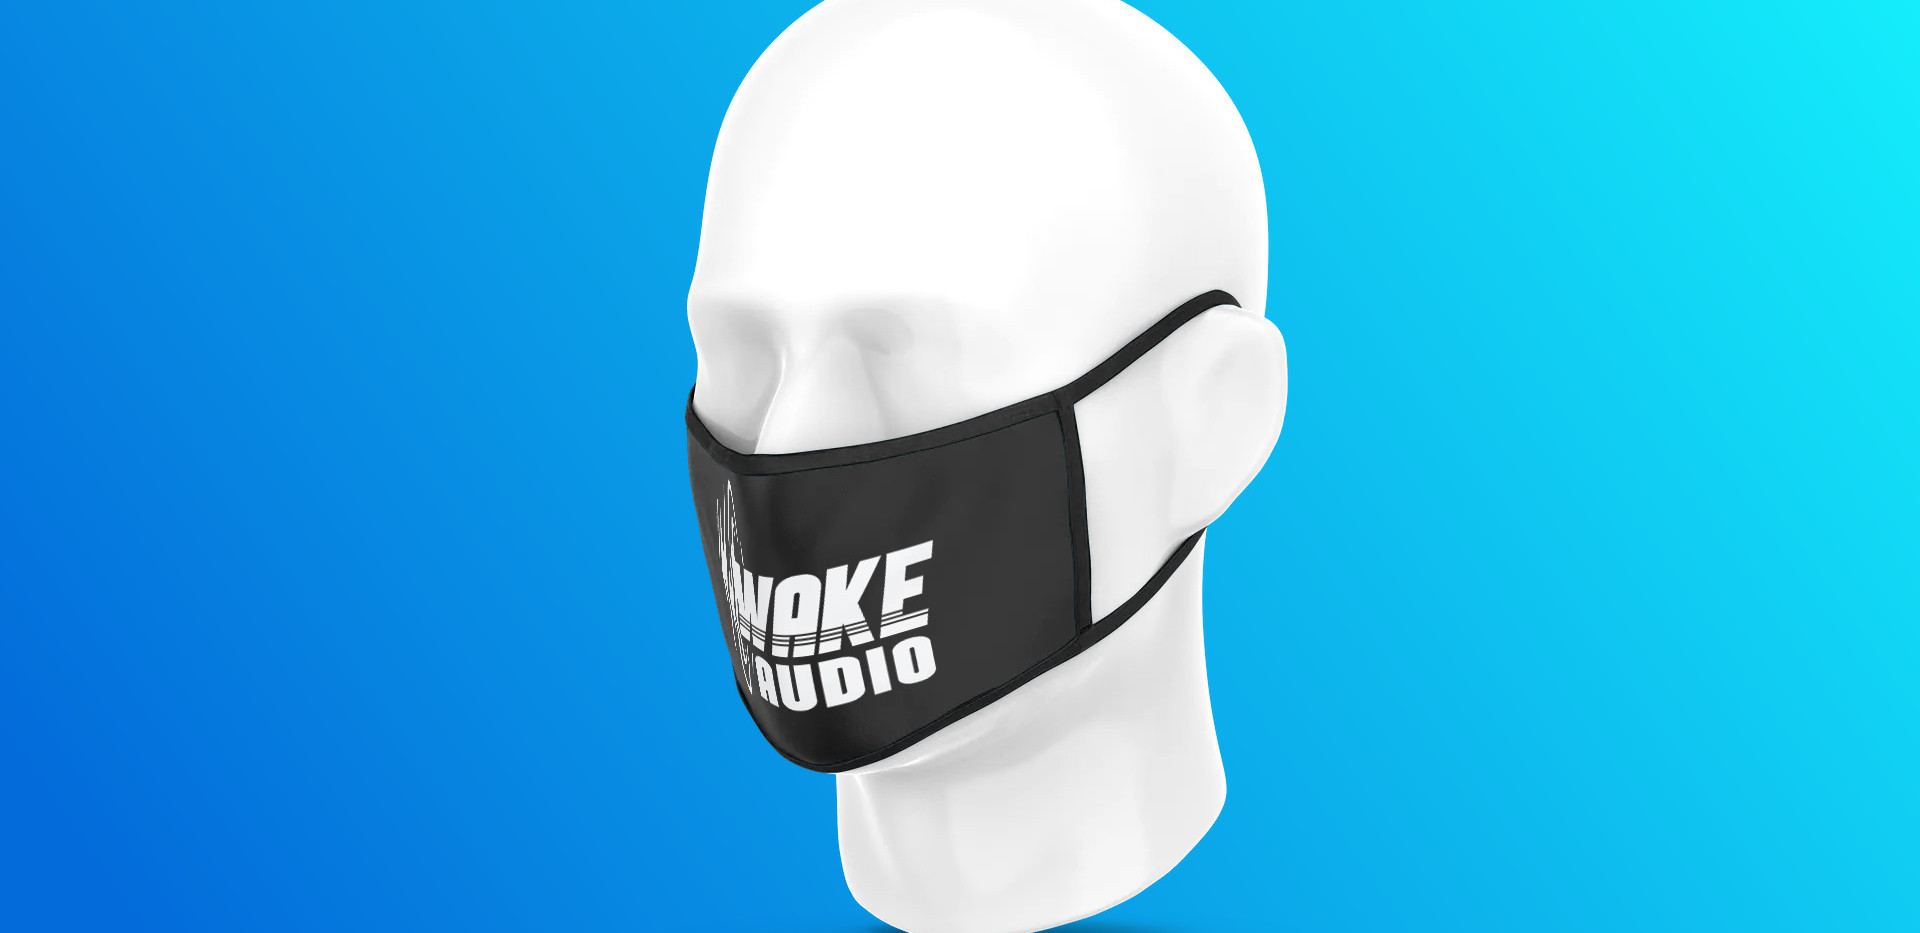 wake audio covid mask